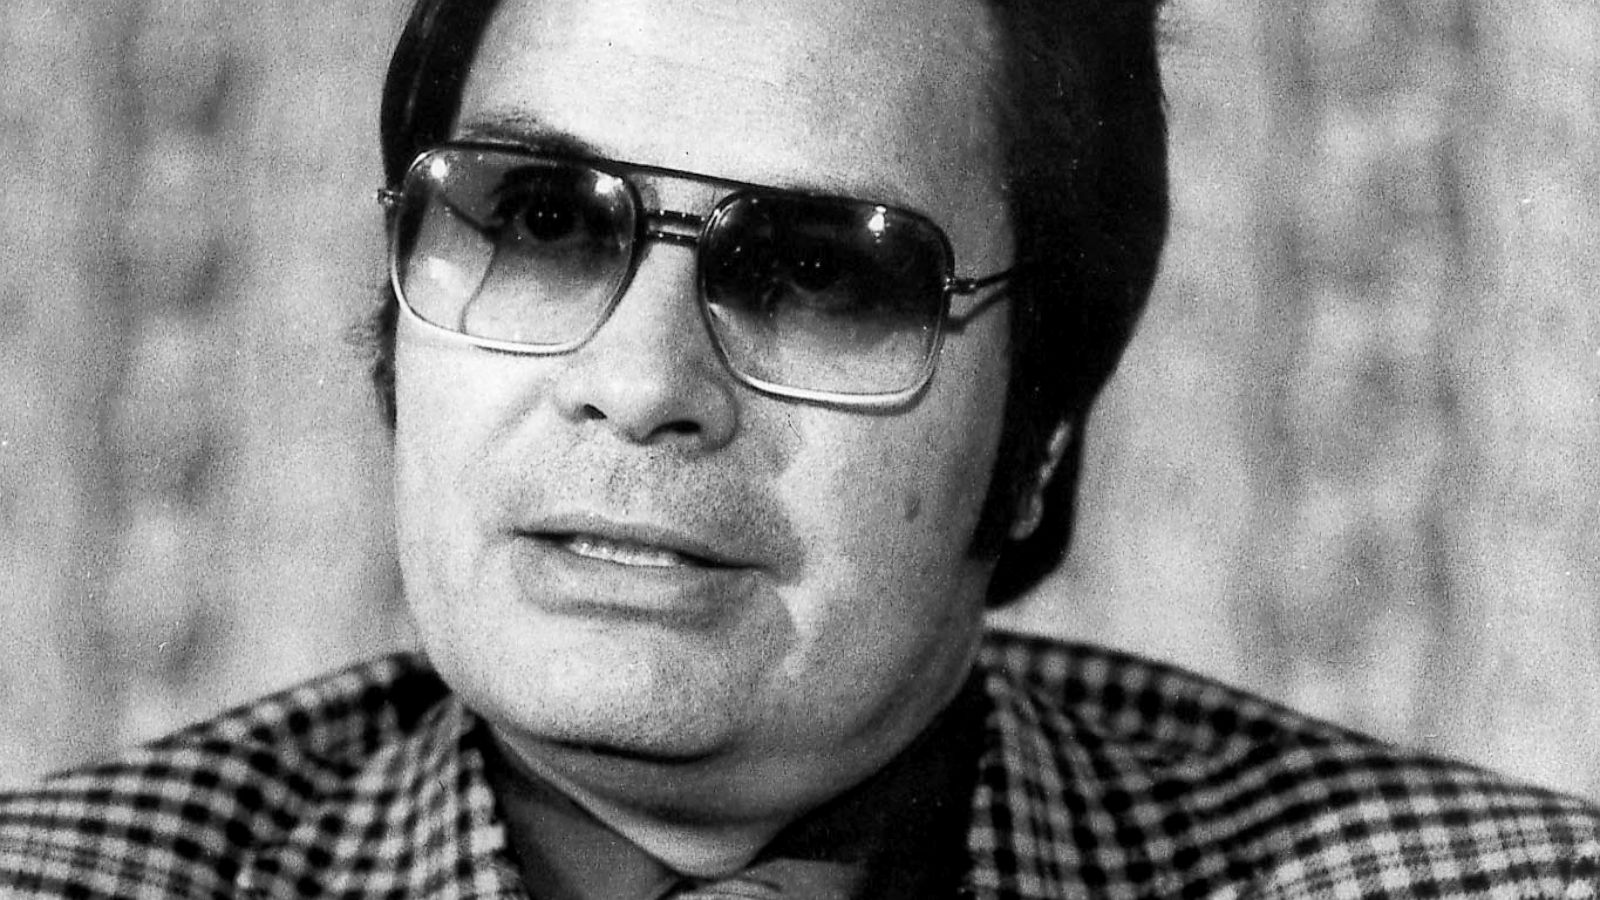 40 years after Jonestown massacre, ex-members describe Jim Jones as a 'real  monster' - ABC News